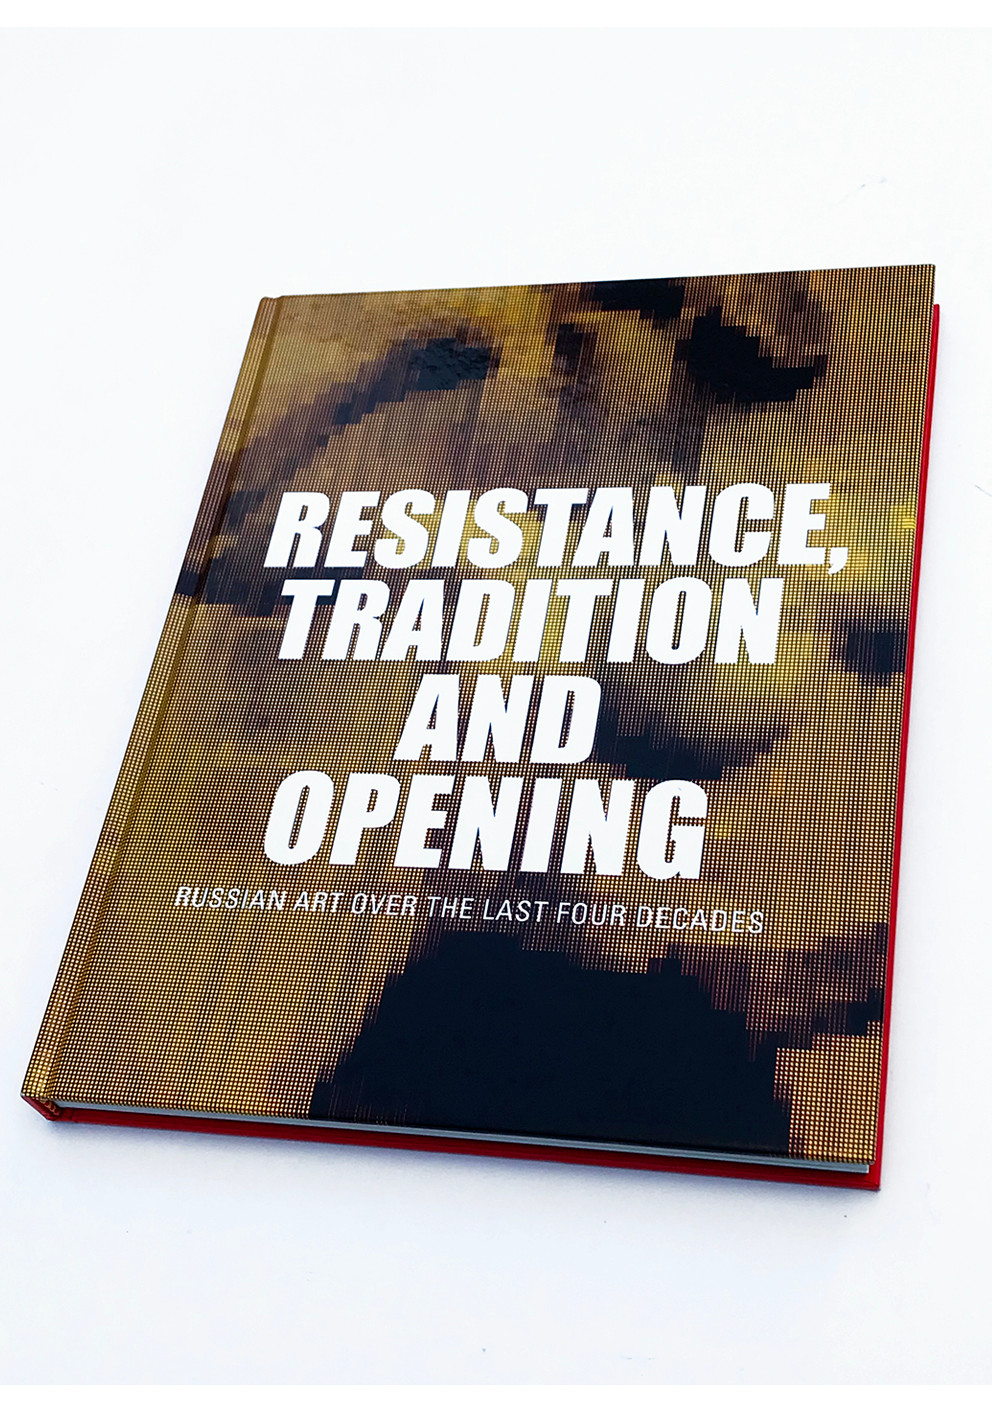 Resistance Tradition and Opening